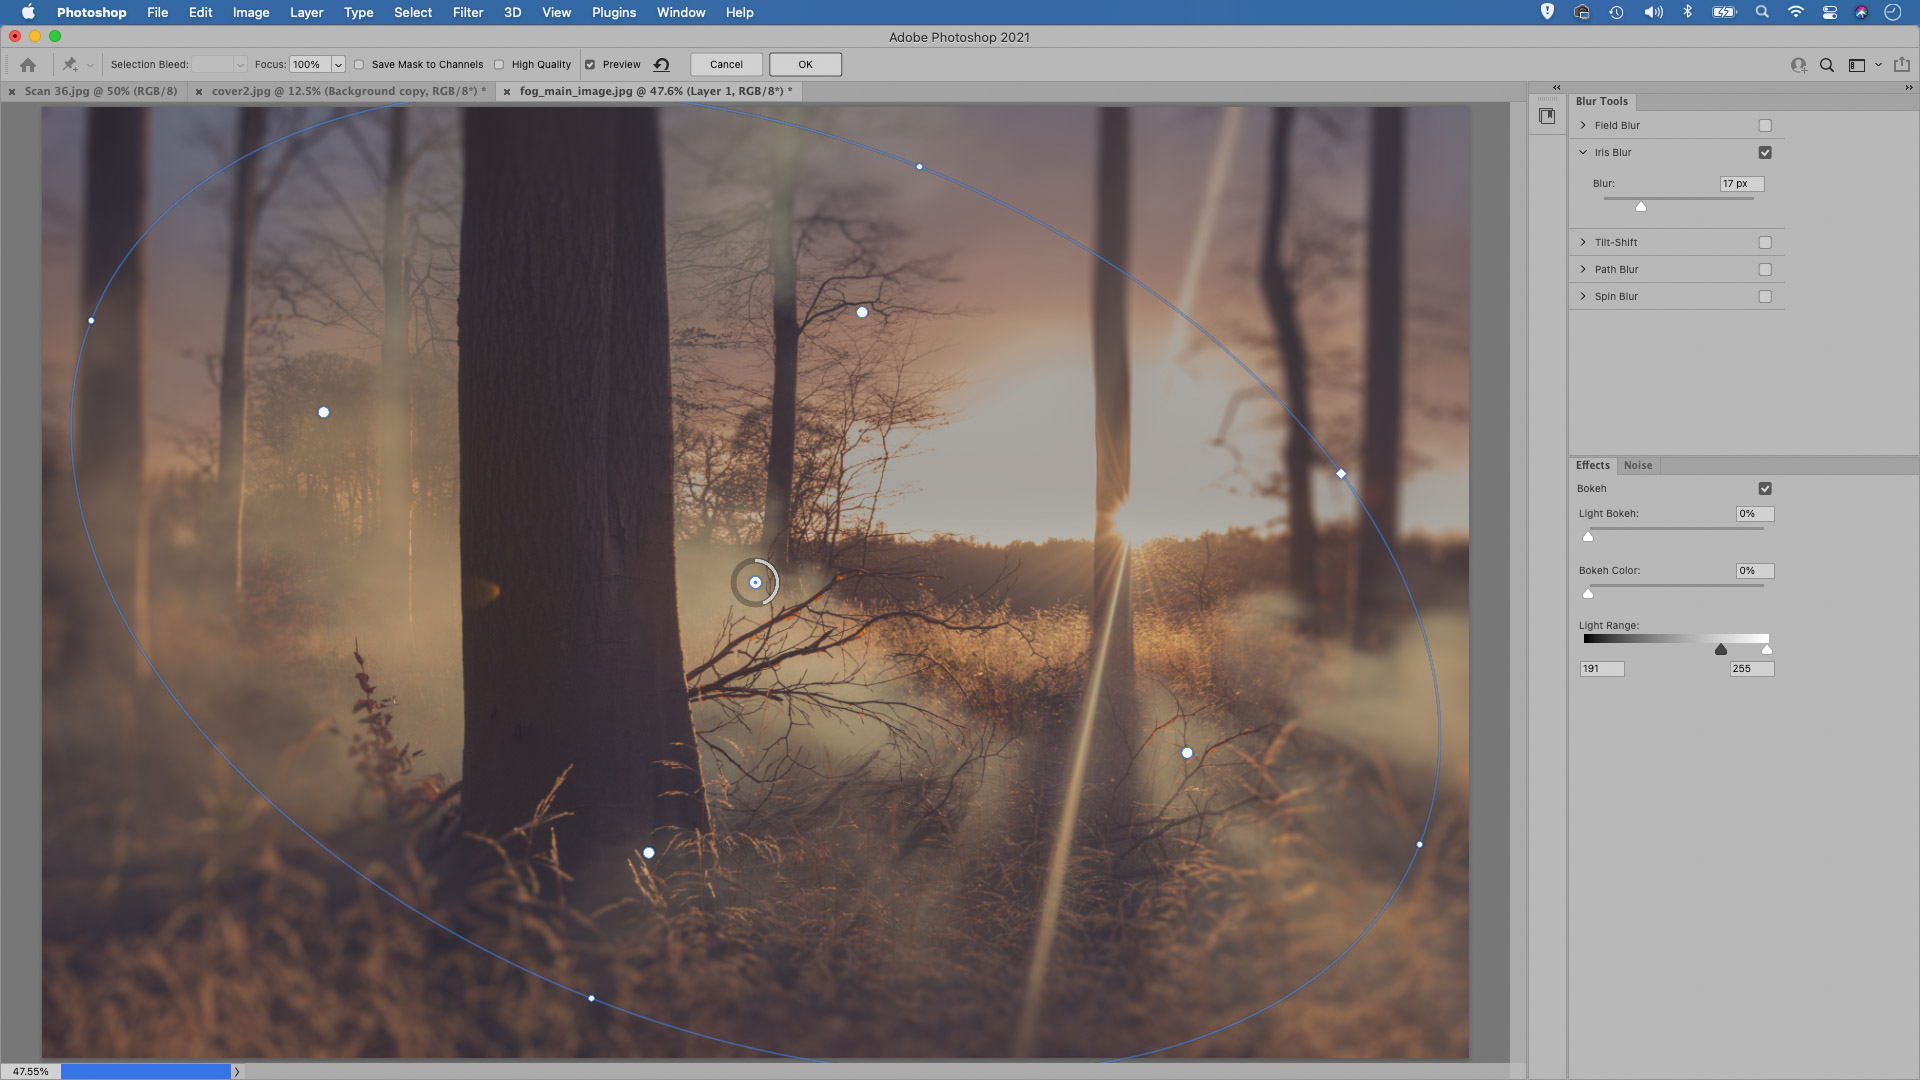 Adding blurred edges in Photoshop to create an out-of-focus effect